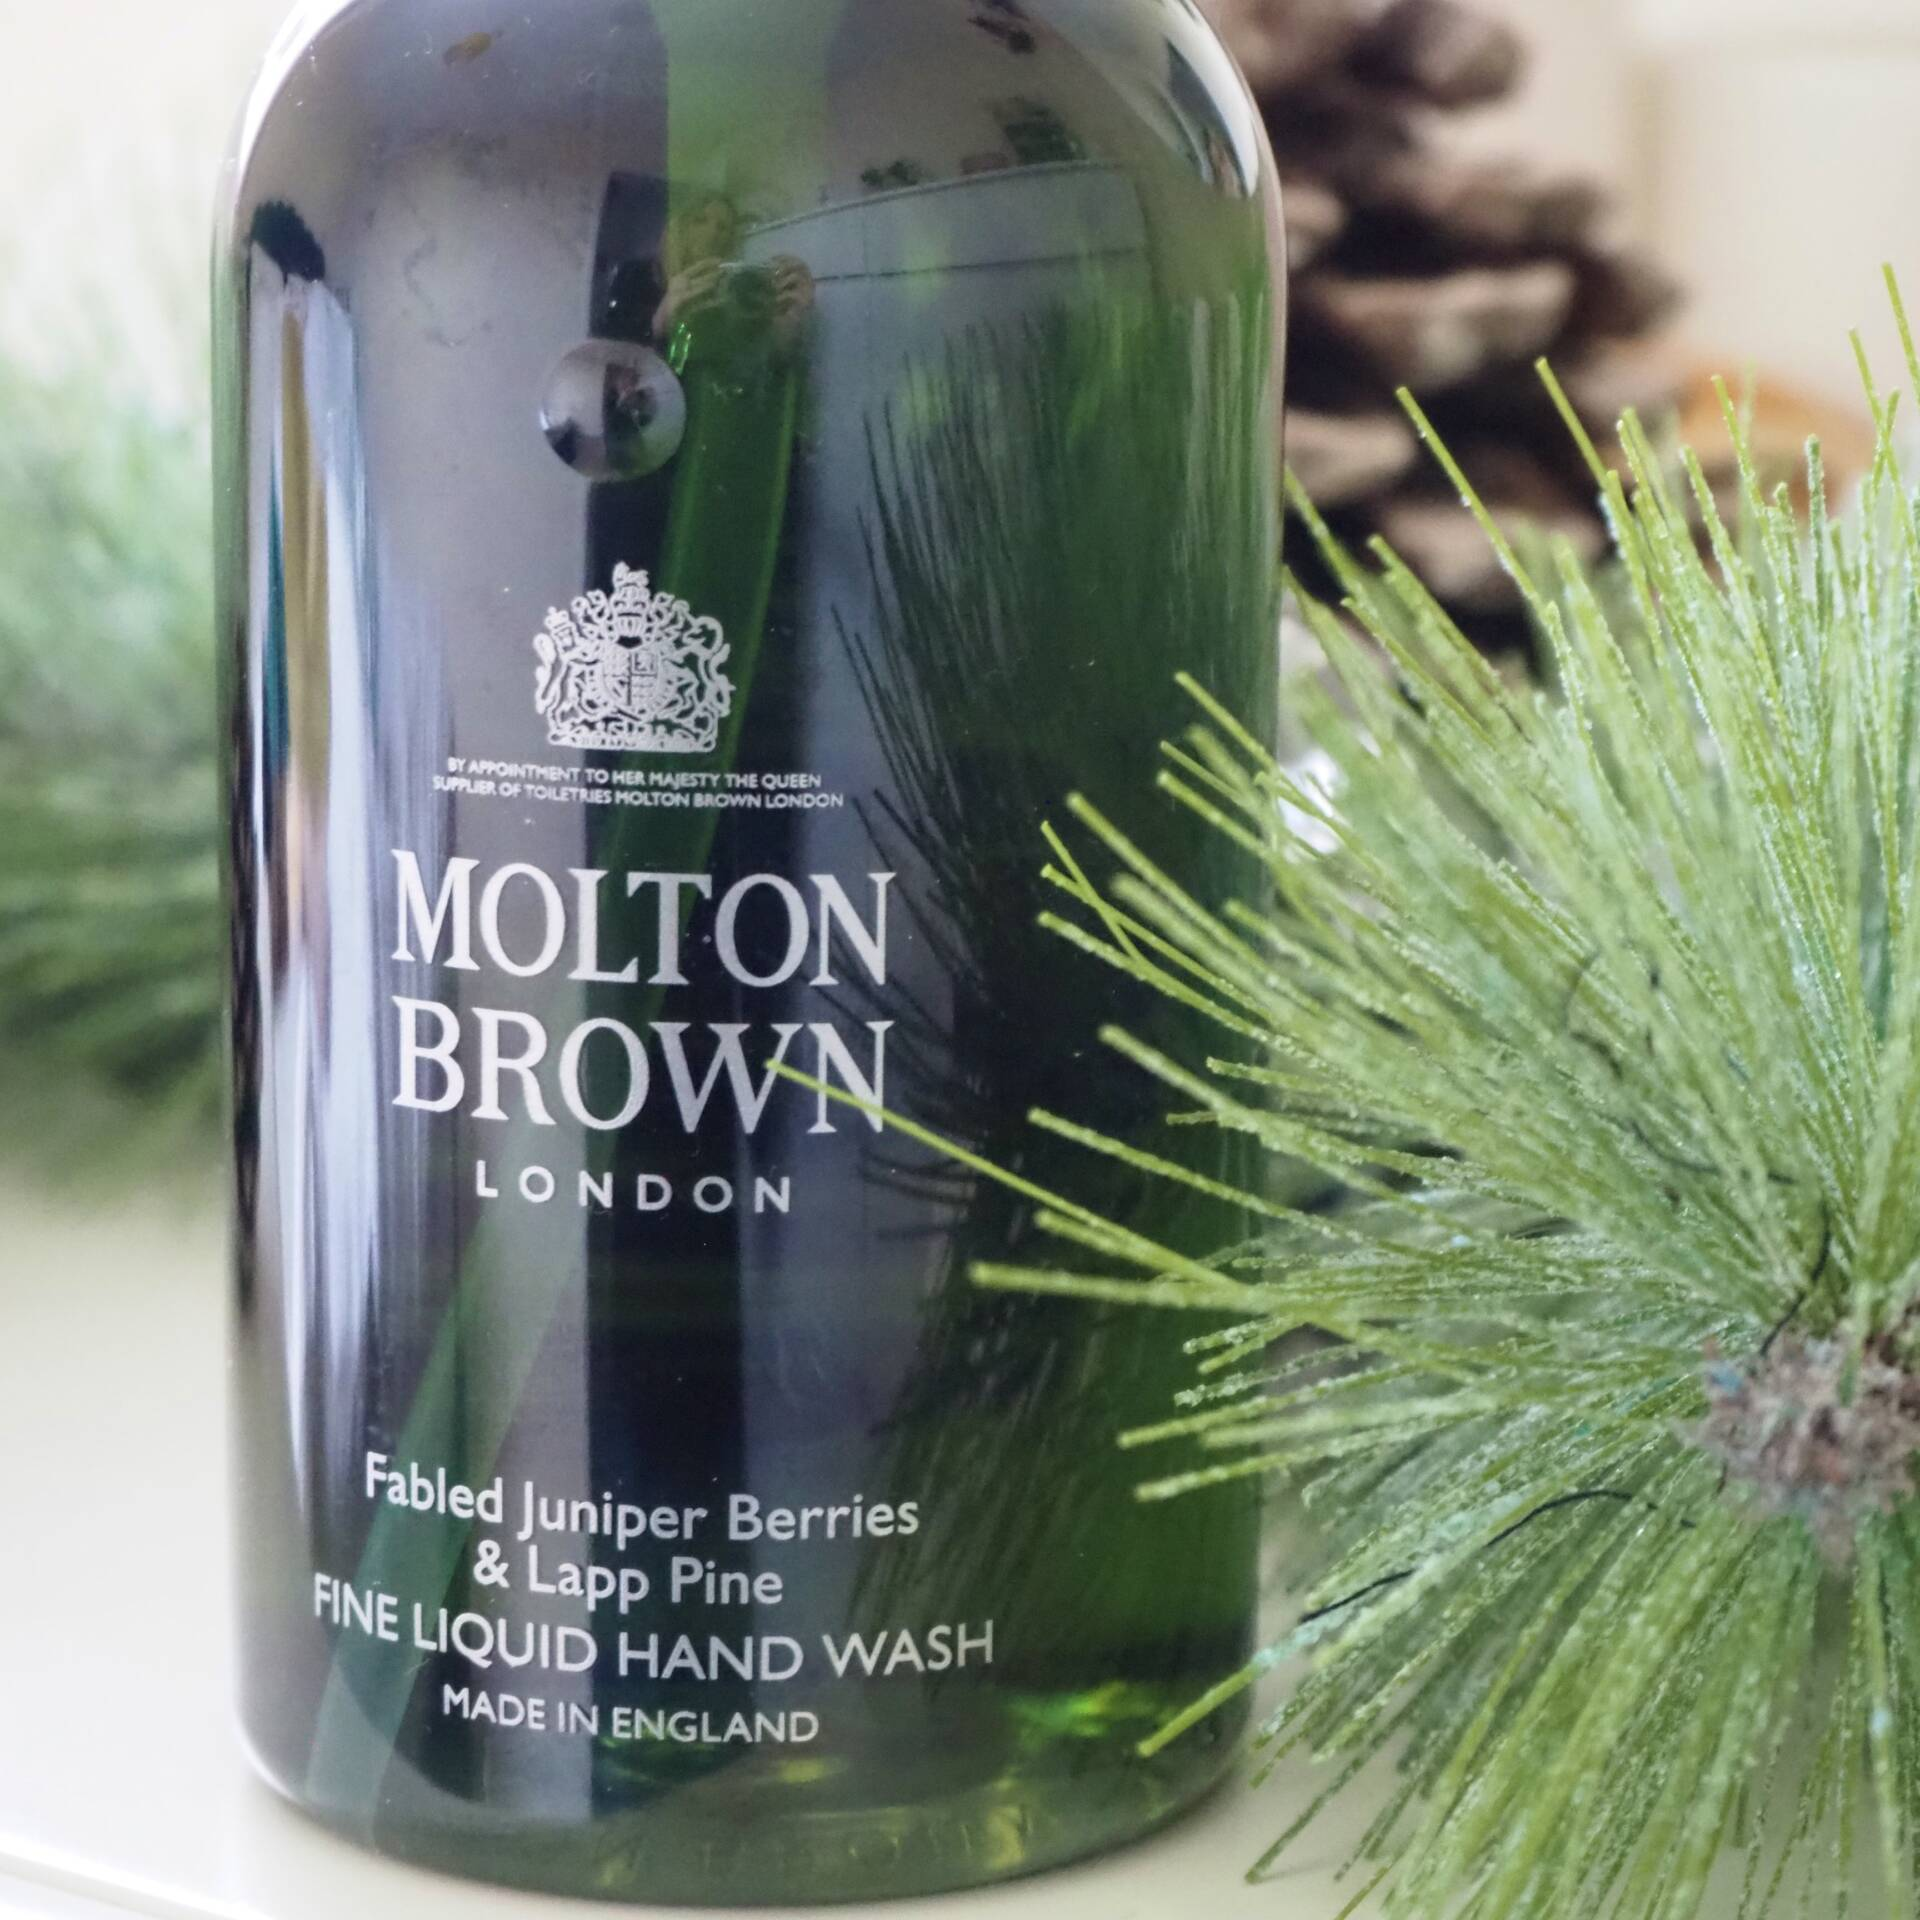 molton-brown-fabled-juniper-berries-and-lapp-pine-hand-wash